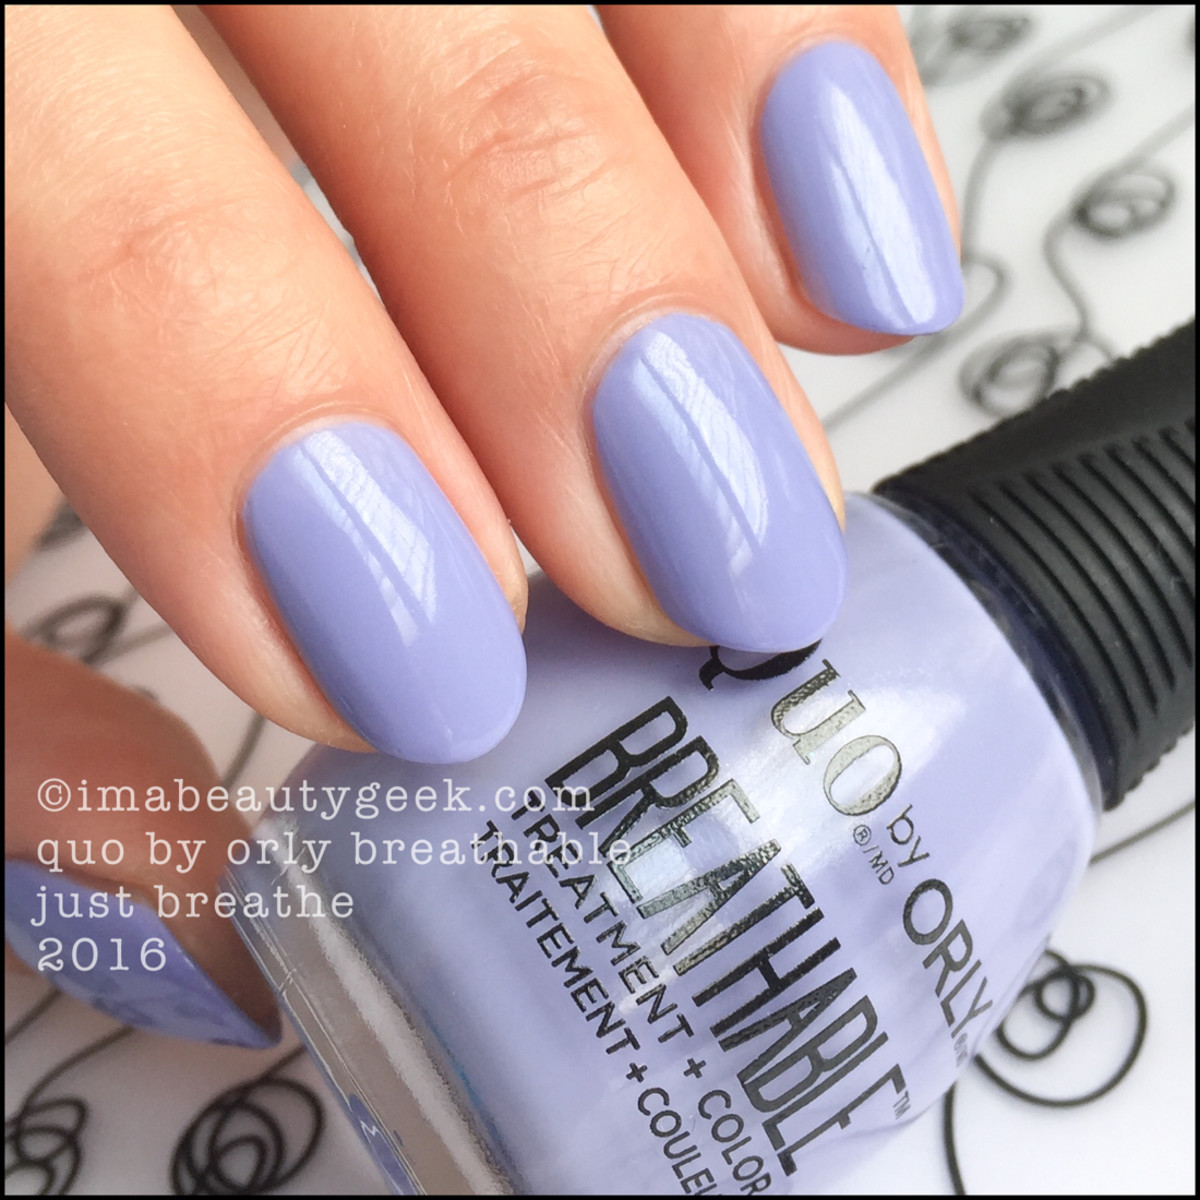 Orly Breathable Nail Polish Swatches Review_Quo by Orly Breathable Just Breathe